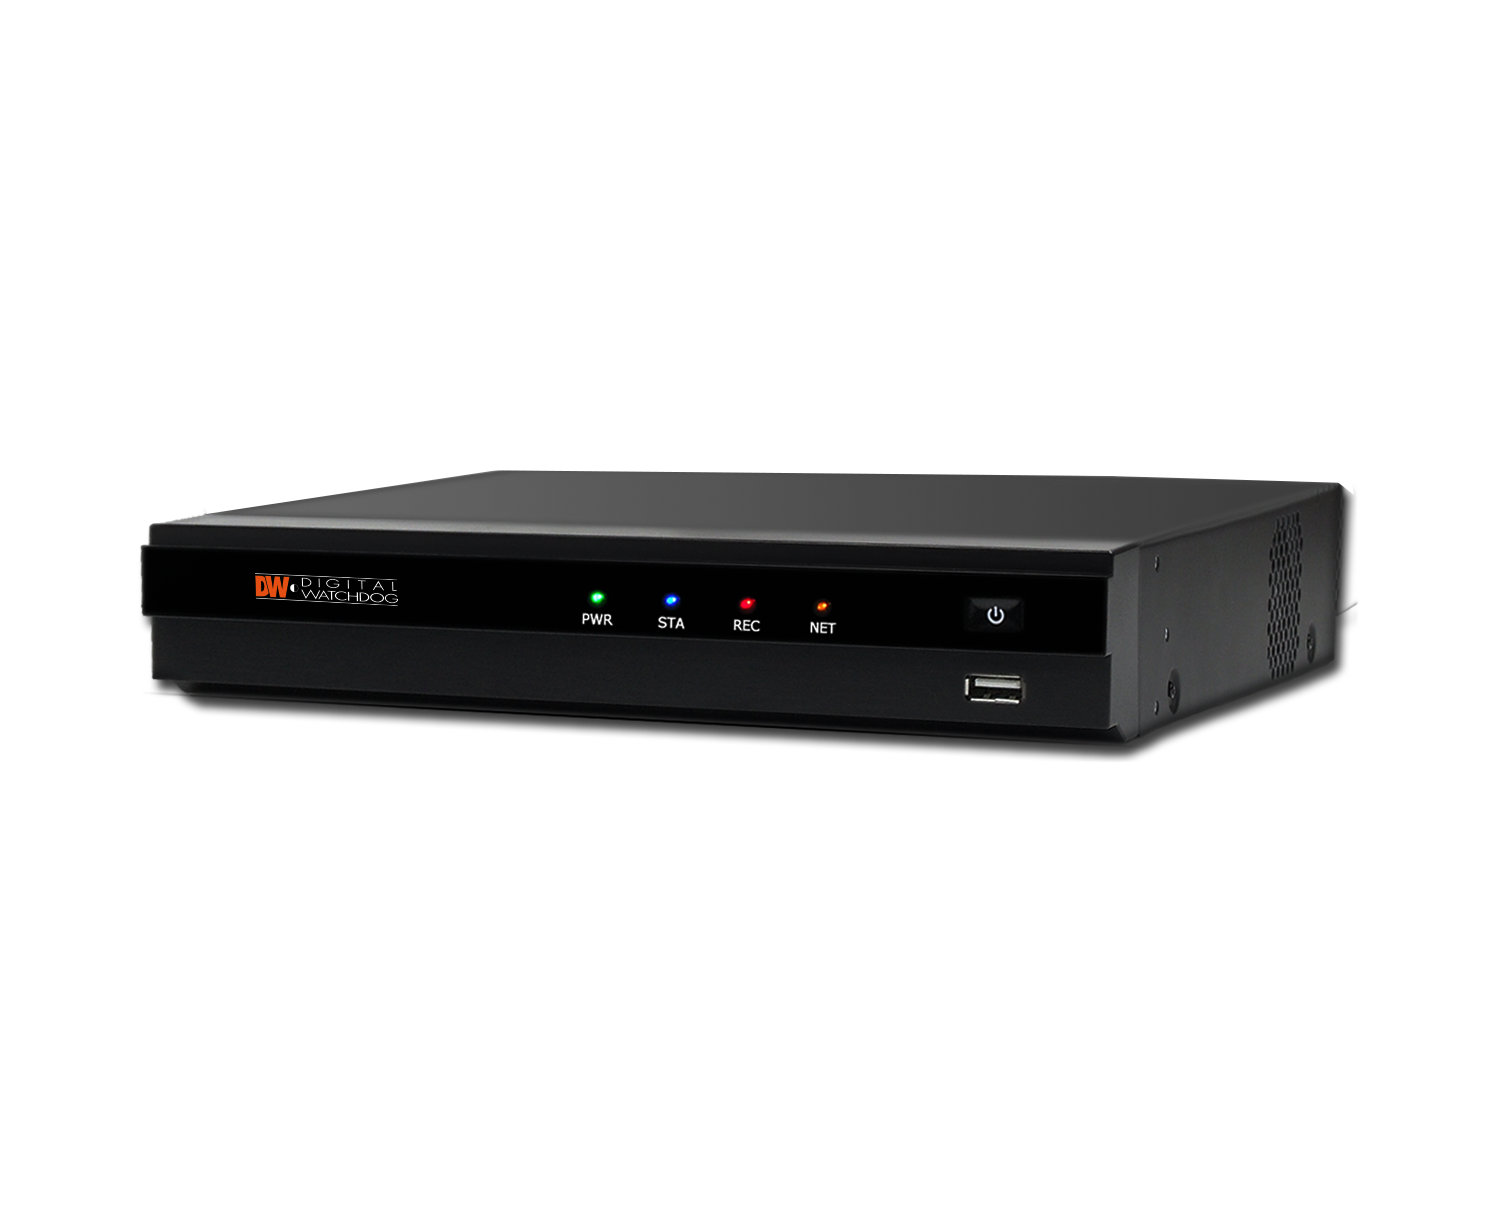 Digital Watchdog Camera Wiring Diagram Poe Wire Center Laptop To Security Vmax Ip Plus 4 Channel Nvr With 5 Virtual Channels Rh Com Ir